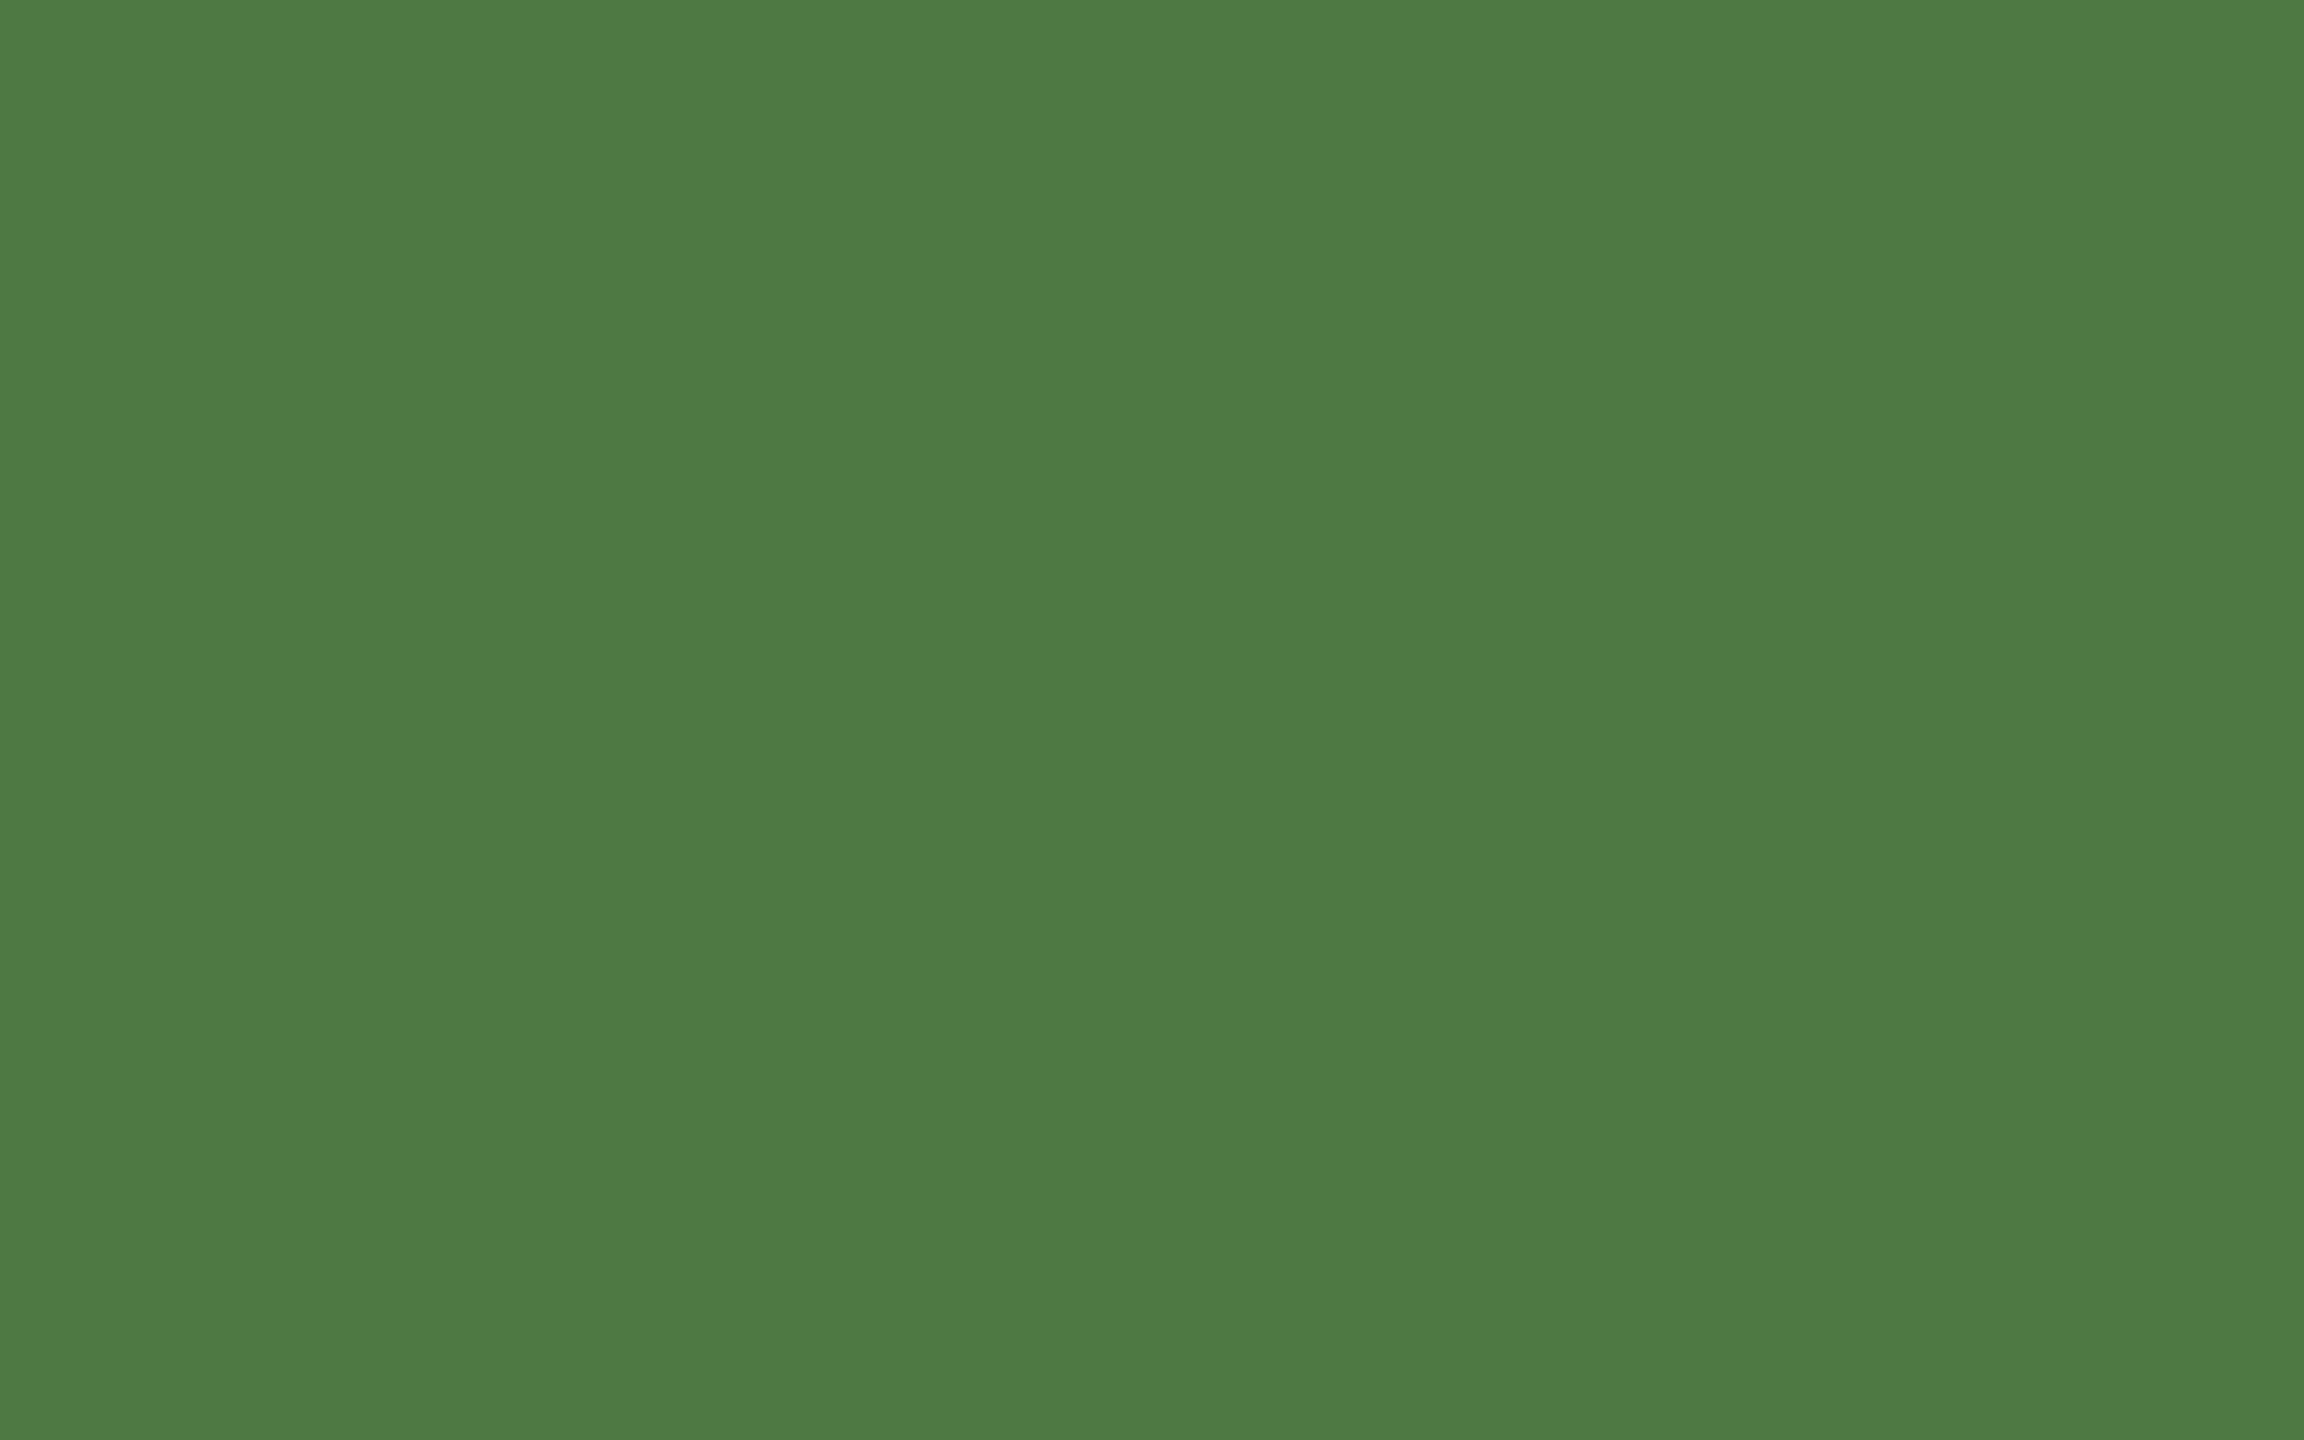 2304x1440 Fern Green Solid Color Background